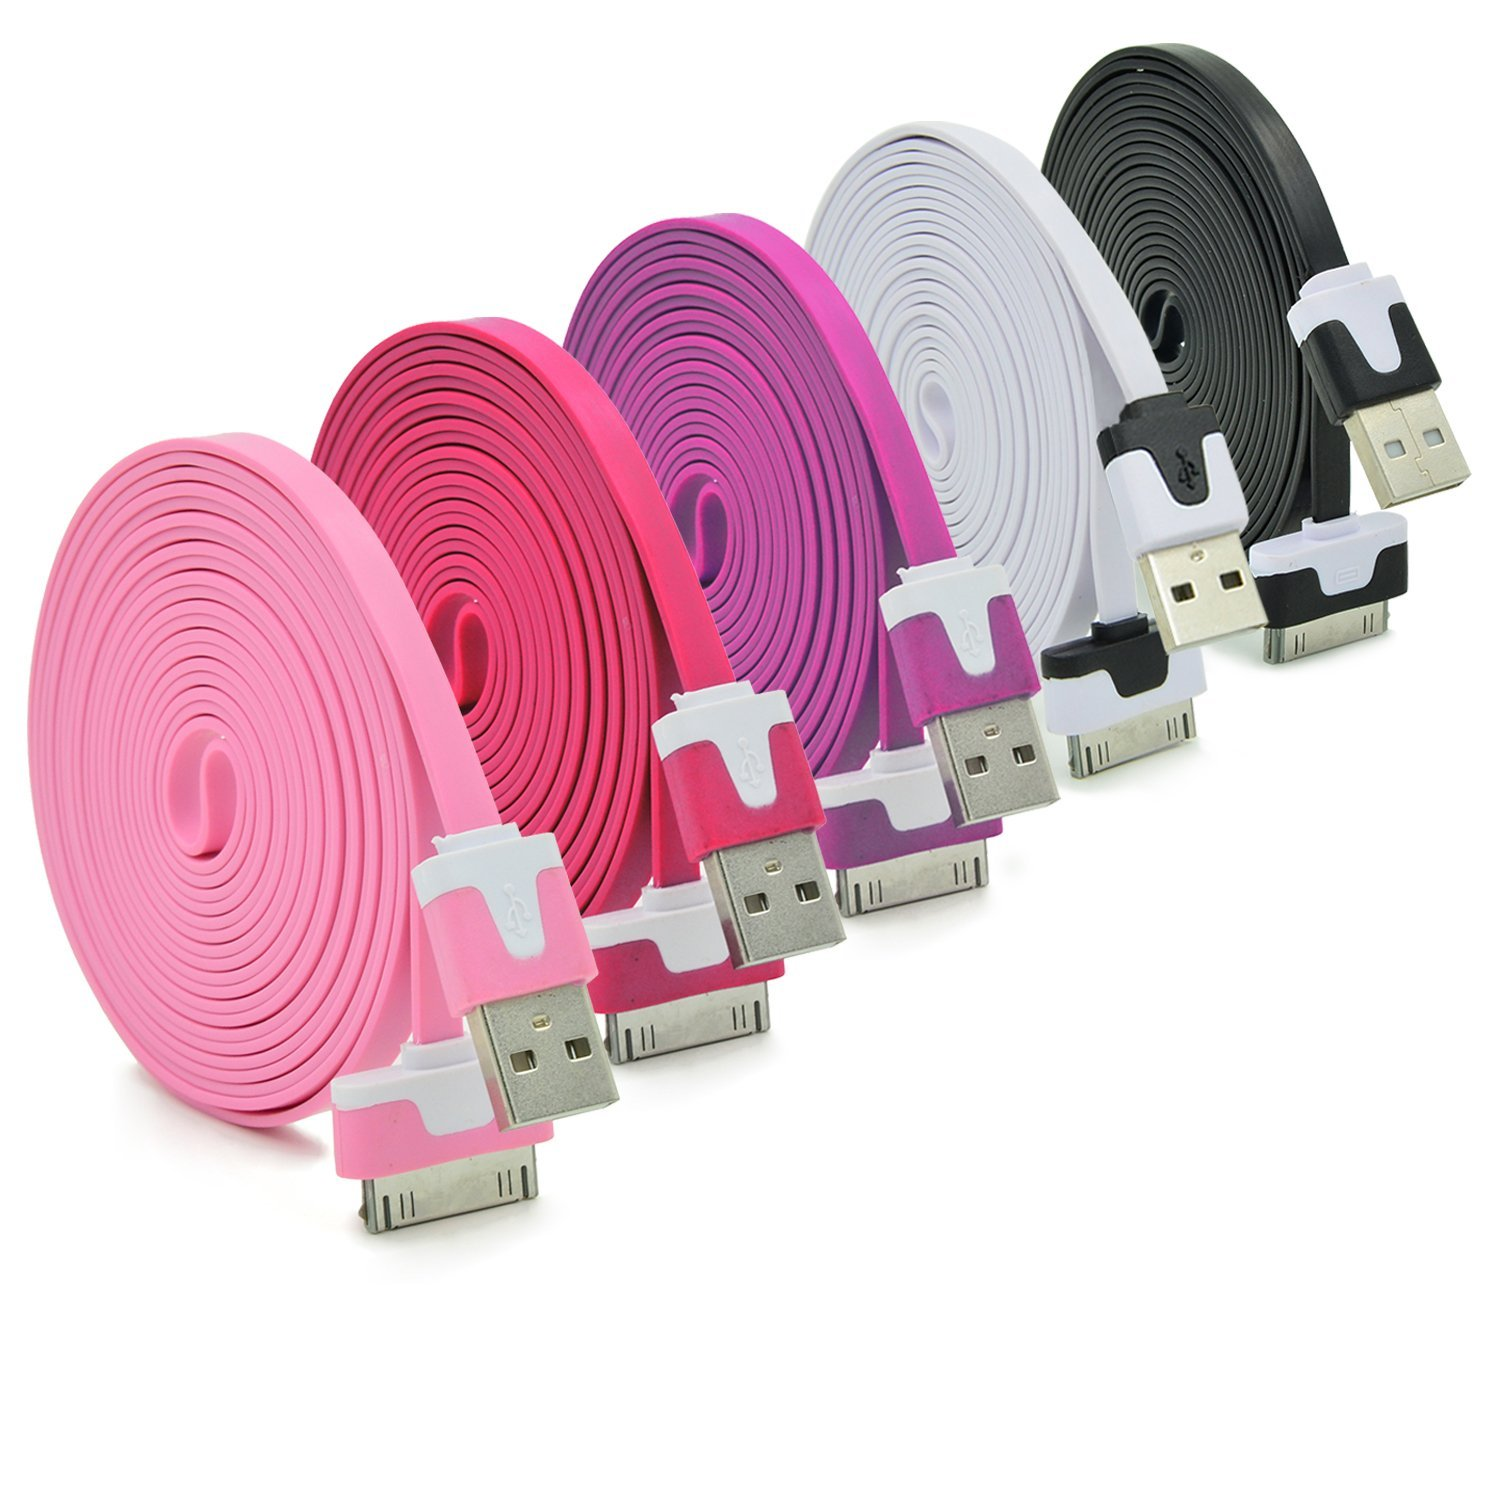 1M Colorful Usb to 30 pin USB Sync Data Charging Charger Cable Cord for iPhone 4 4S 4G 3GS  iPad 2 3 iPod nano touch Adapter